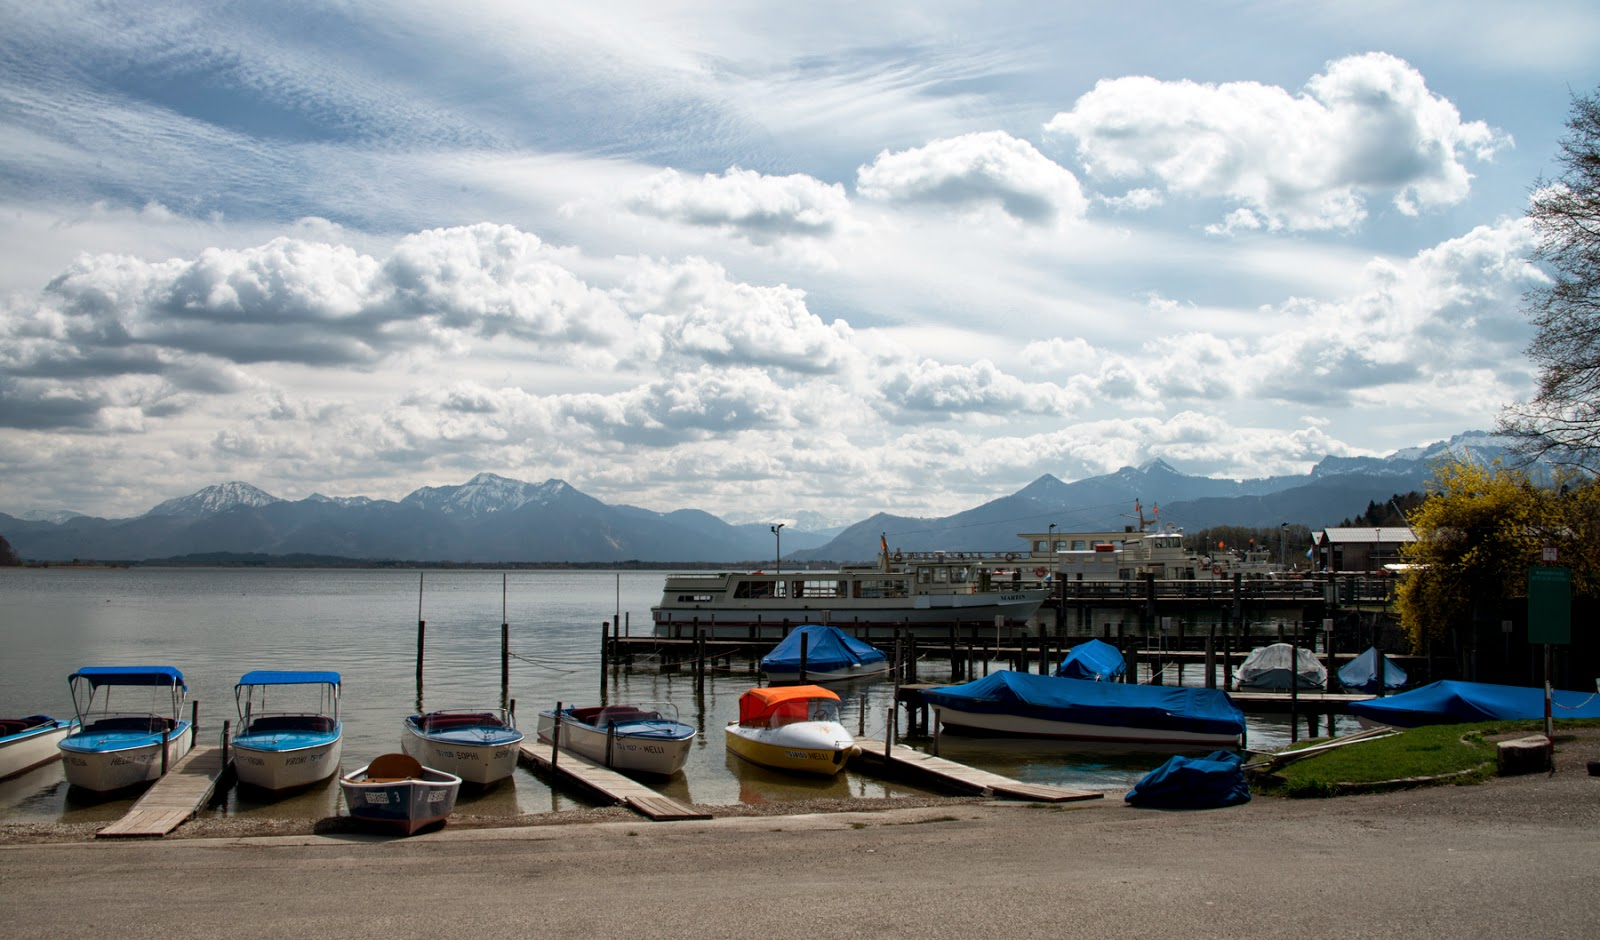 Lake Chiemsee, Bavaria, Germany, and King Ludwig's Herrenchiemsee Palace